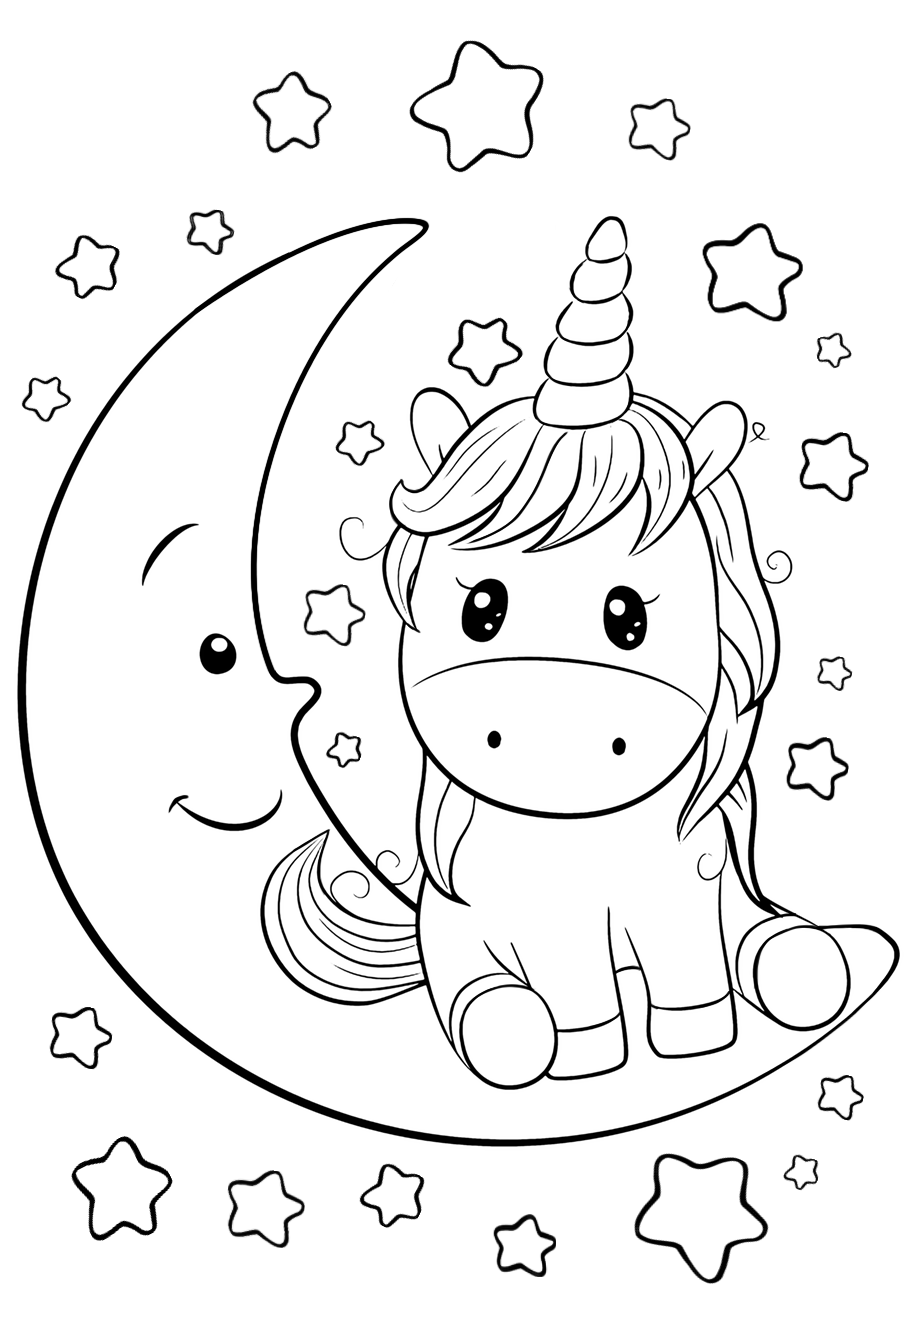 cute easy unicorn coloring pages 25 cute cartoon unicorn coloring pages unicorn coloring coloring easy pages unicorn cute